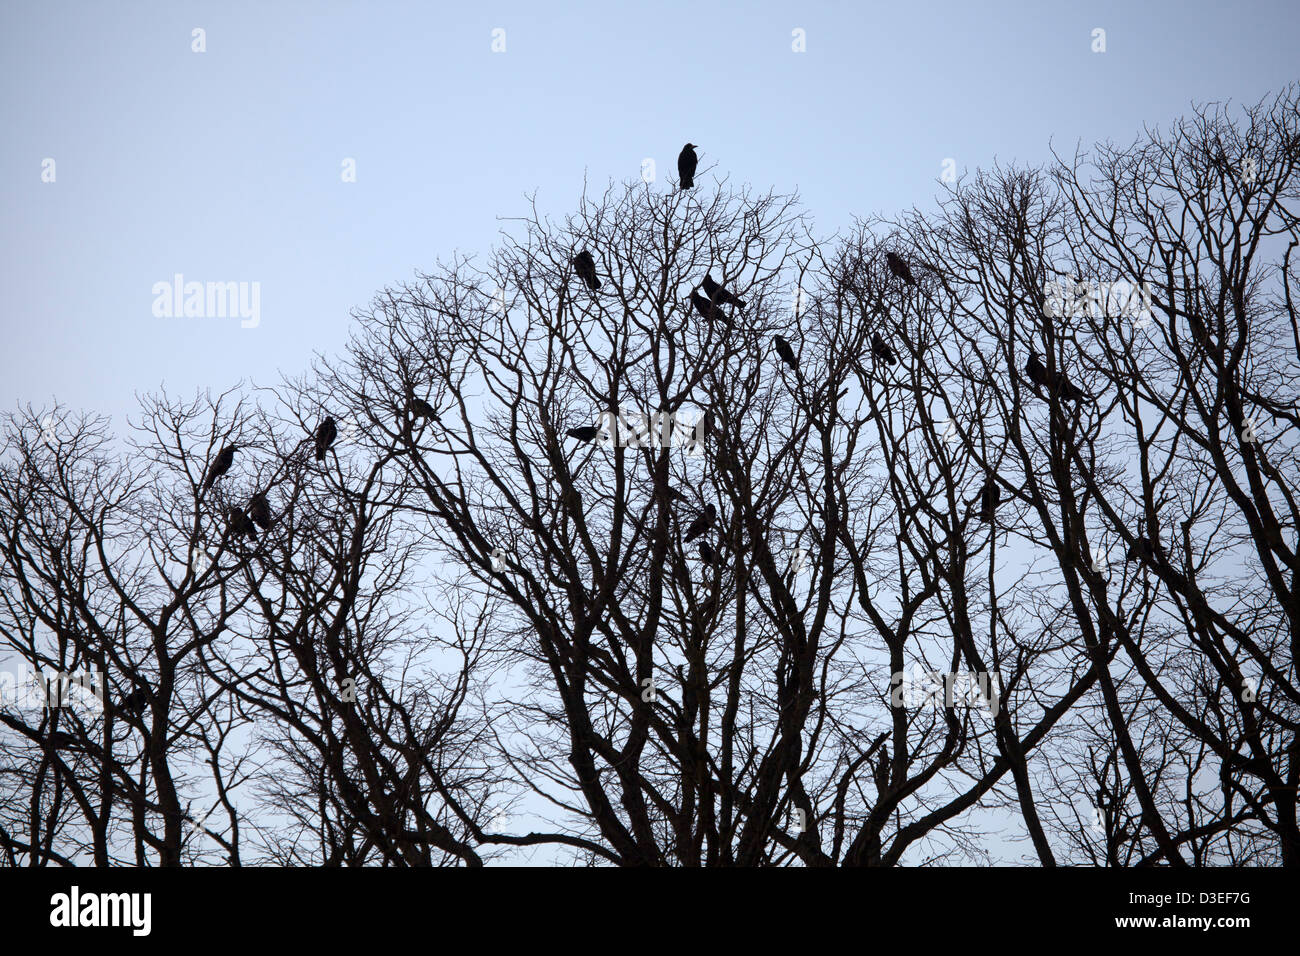 Crows in Tree Tops in winter - Stock Image